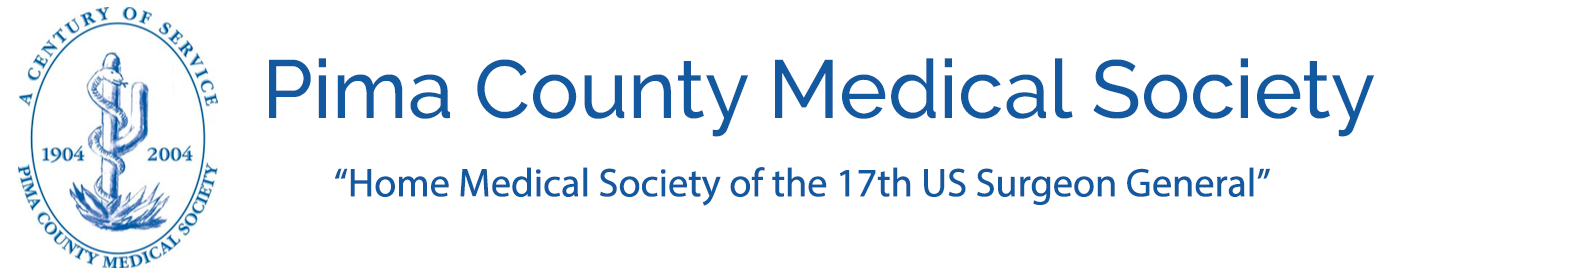 Pima County Medical Society